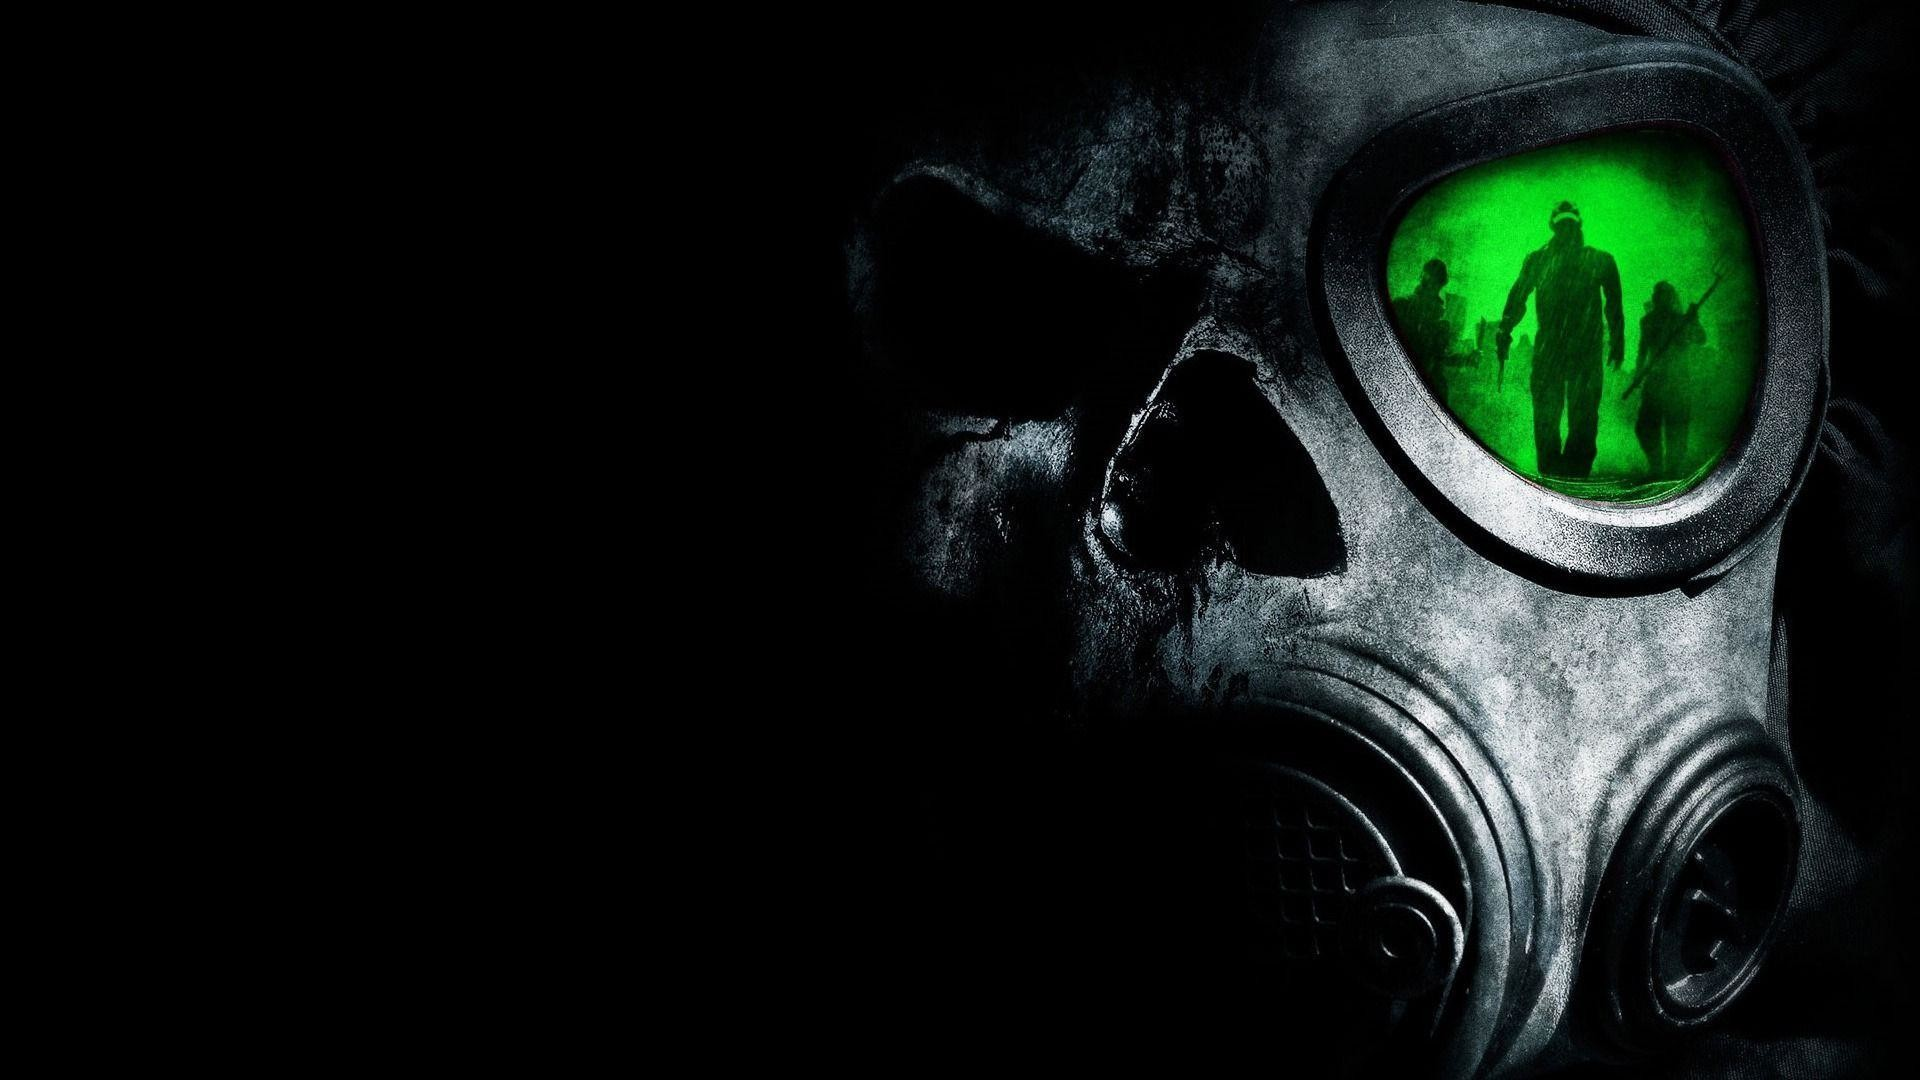 Res: 1920x1080, Scary Picture HD Wallpaper - Beraplan.